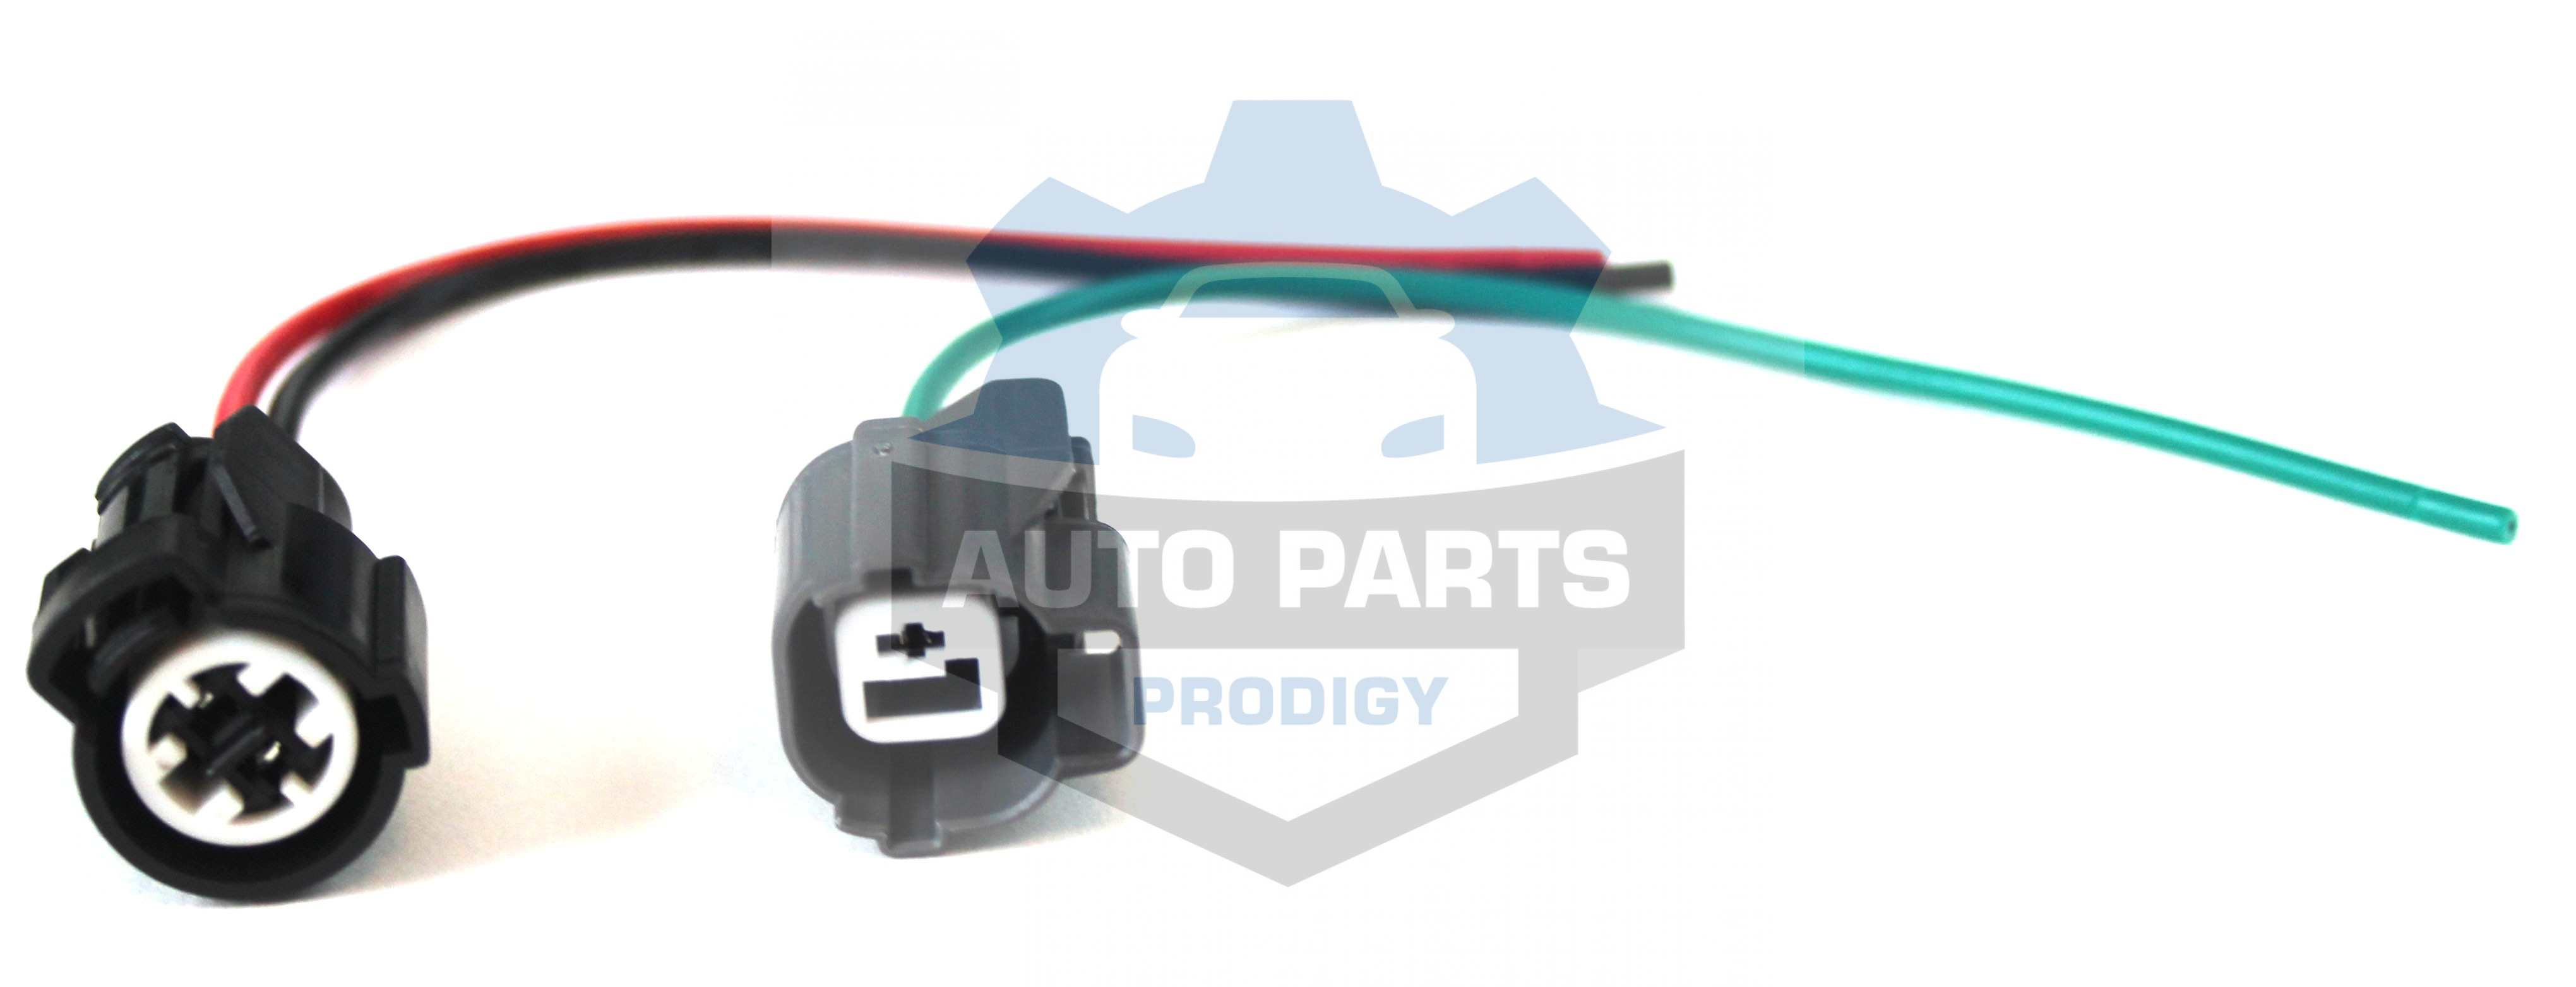 Brand New Vtec Oil Pressure Switch And Solenoid Plug Pigtail 1992 Honda Prelude Oils Kit